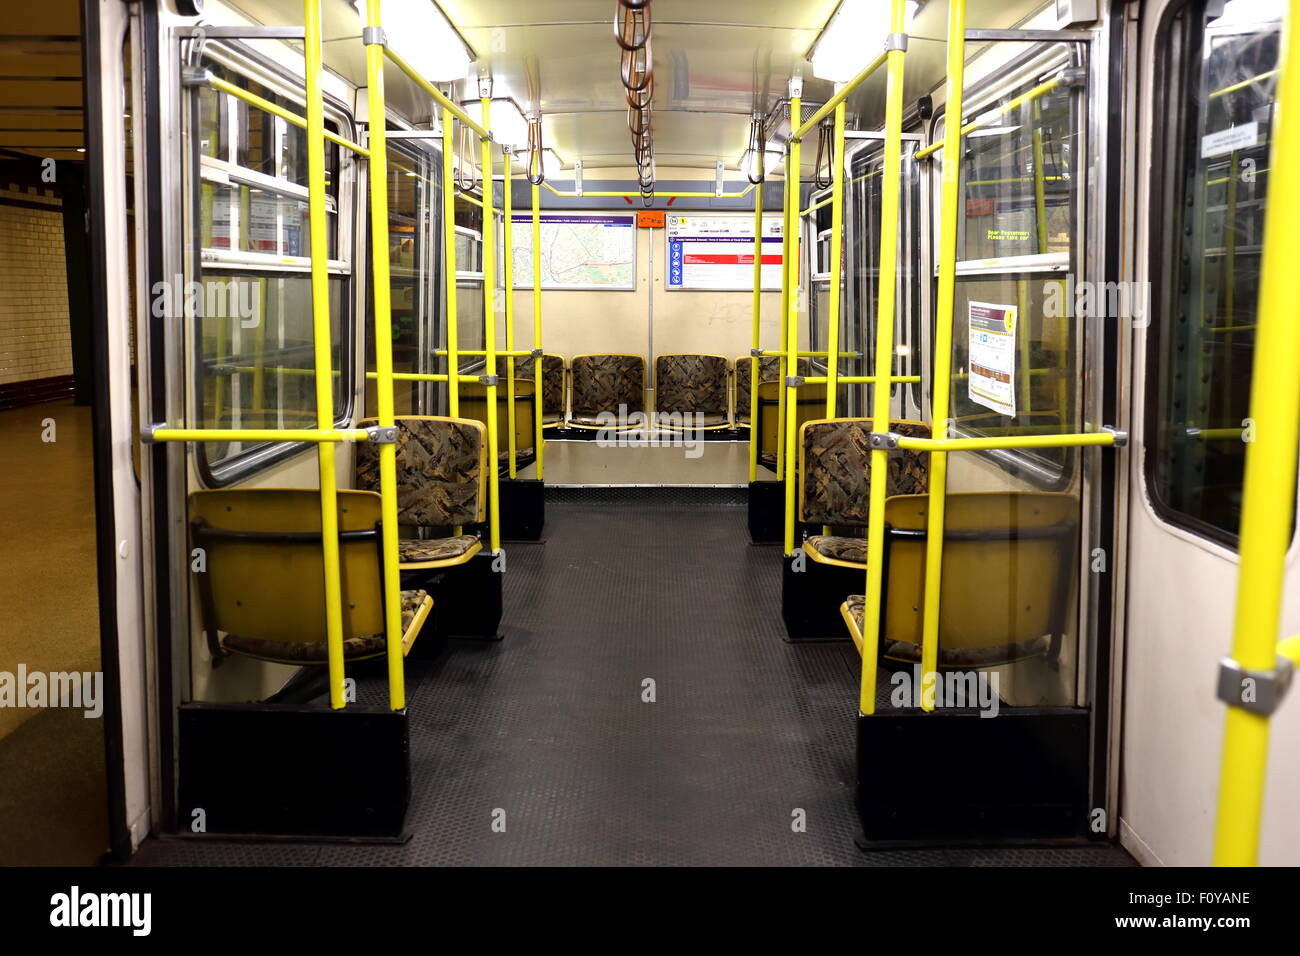 Inside a carriage on Budapest's metro line 1, M1, the Yellow Line - Stock Image